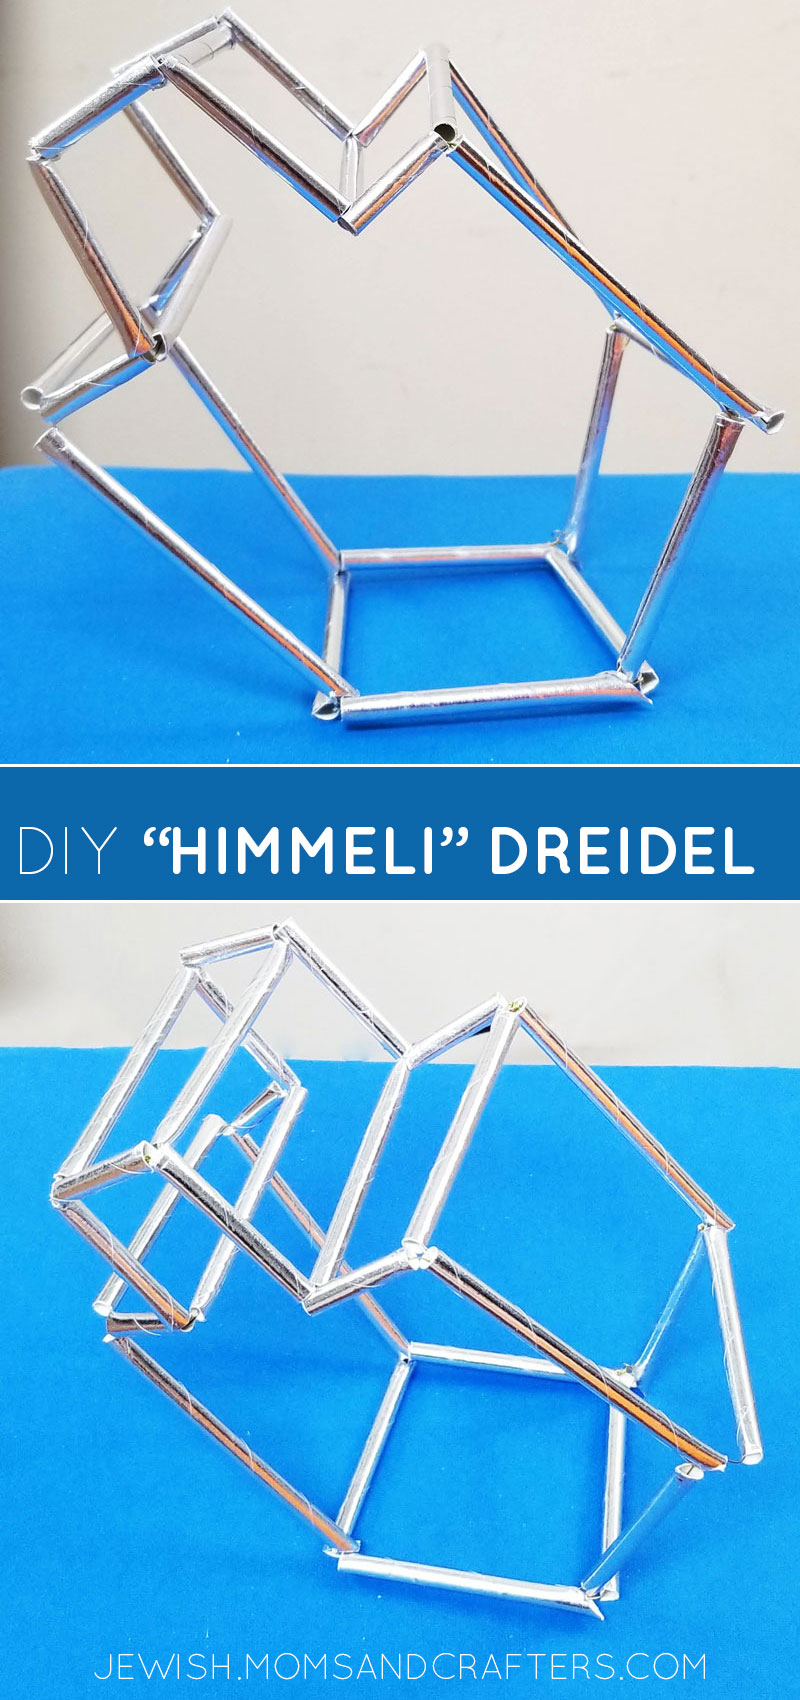 Click to learn how to make this dreidel decoration - a cool Hanukkah craft and chanukah party decoration idea.